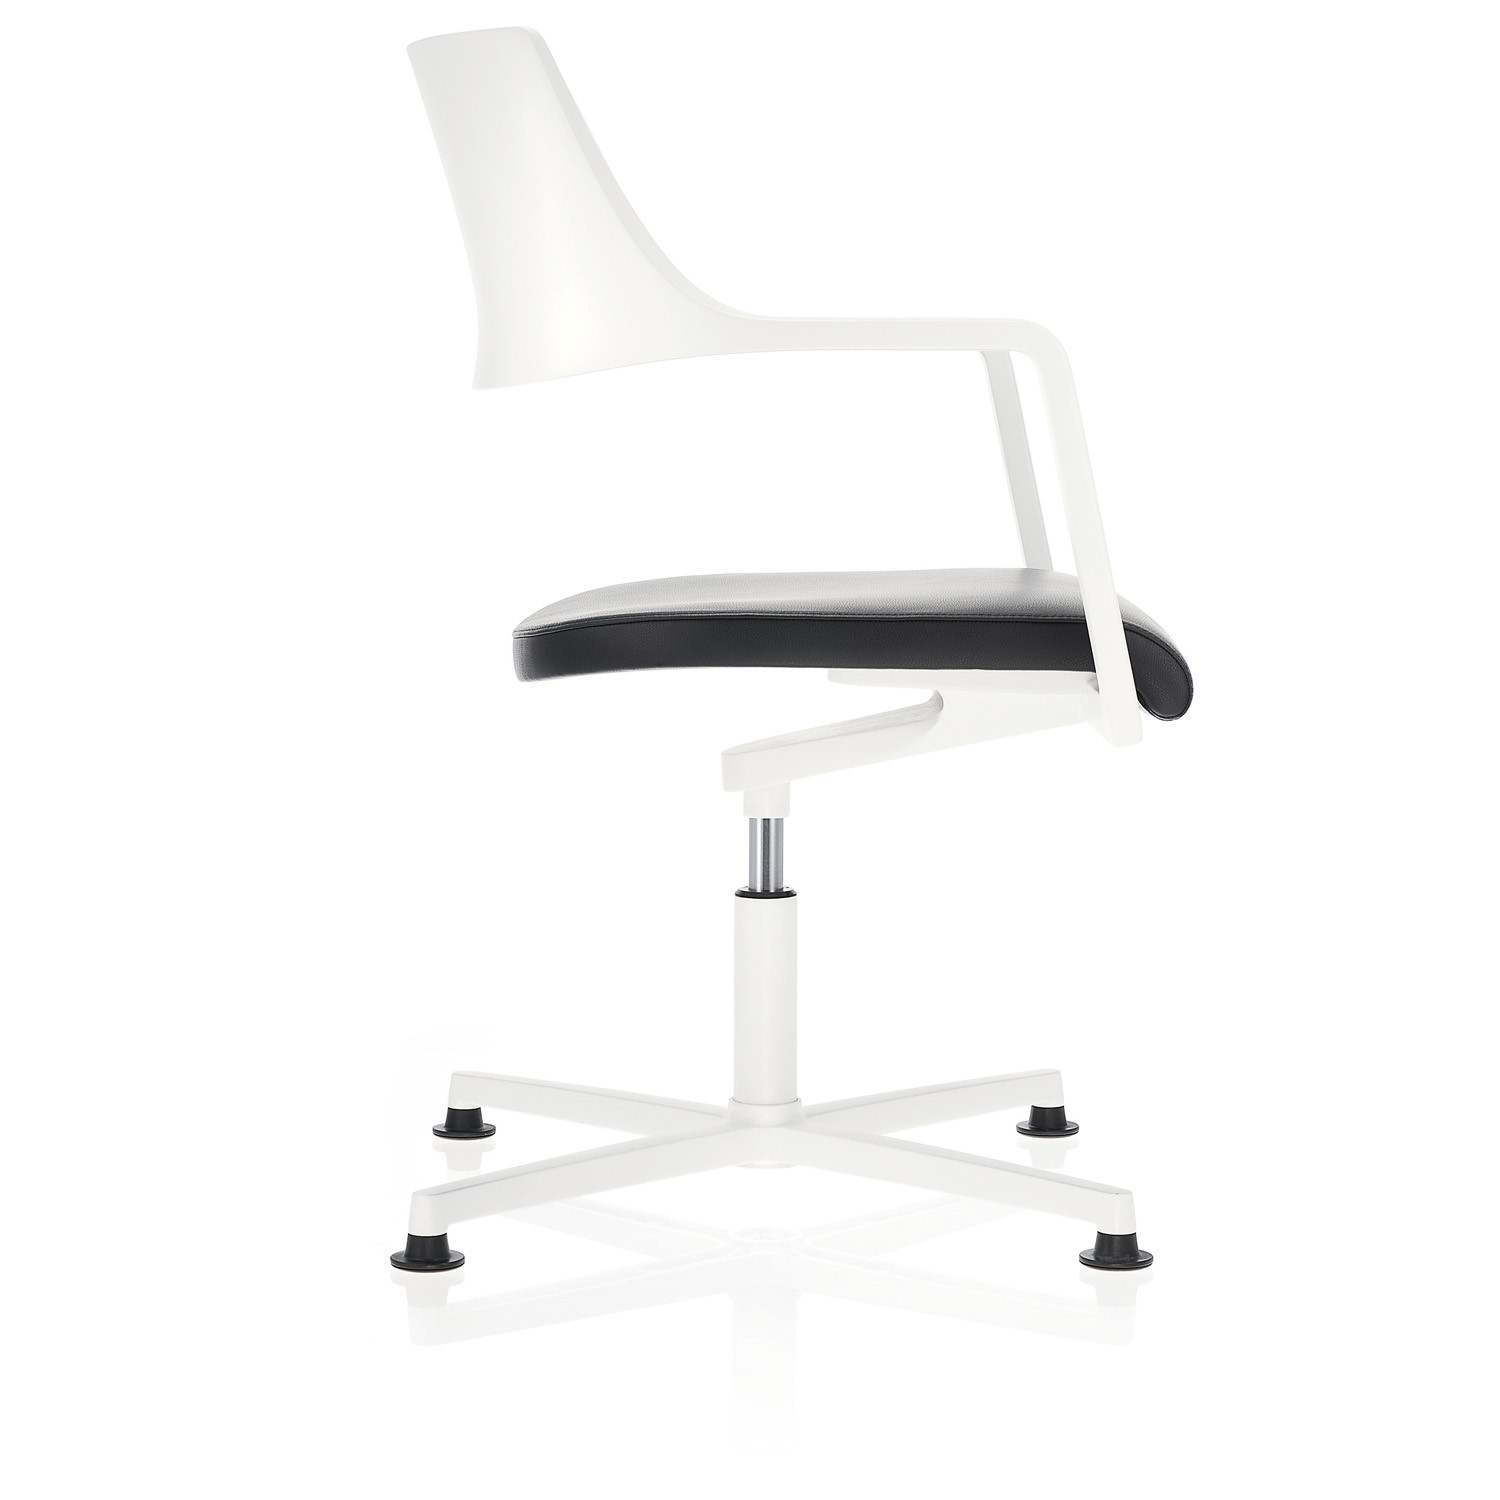 Tempuro Swivel Easy Chair with glides